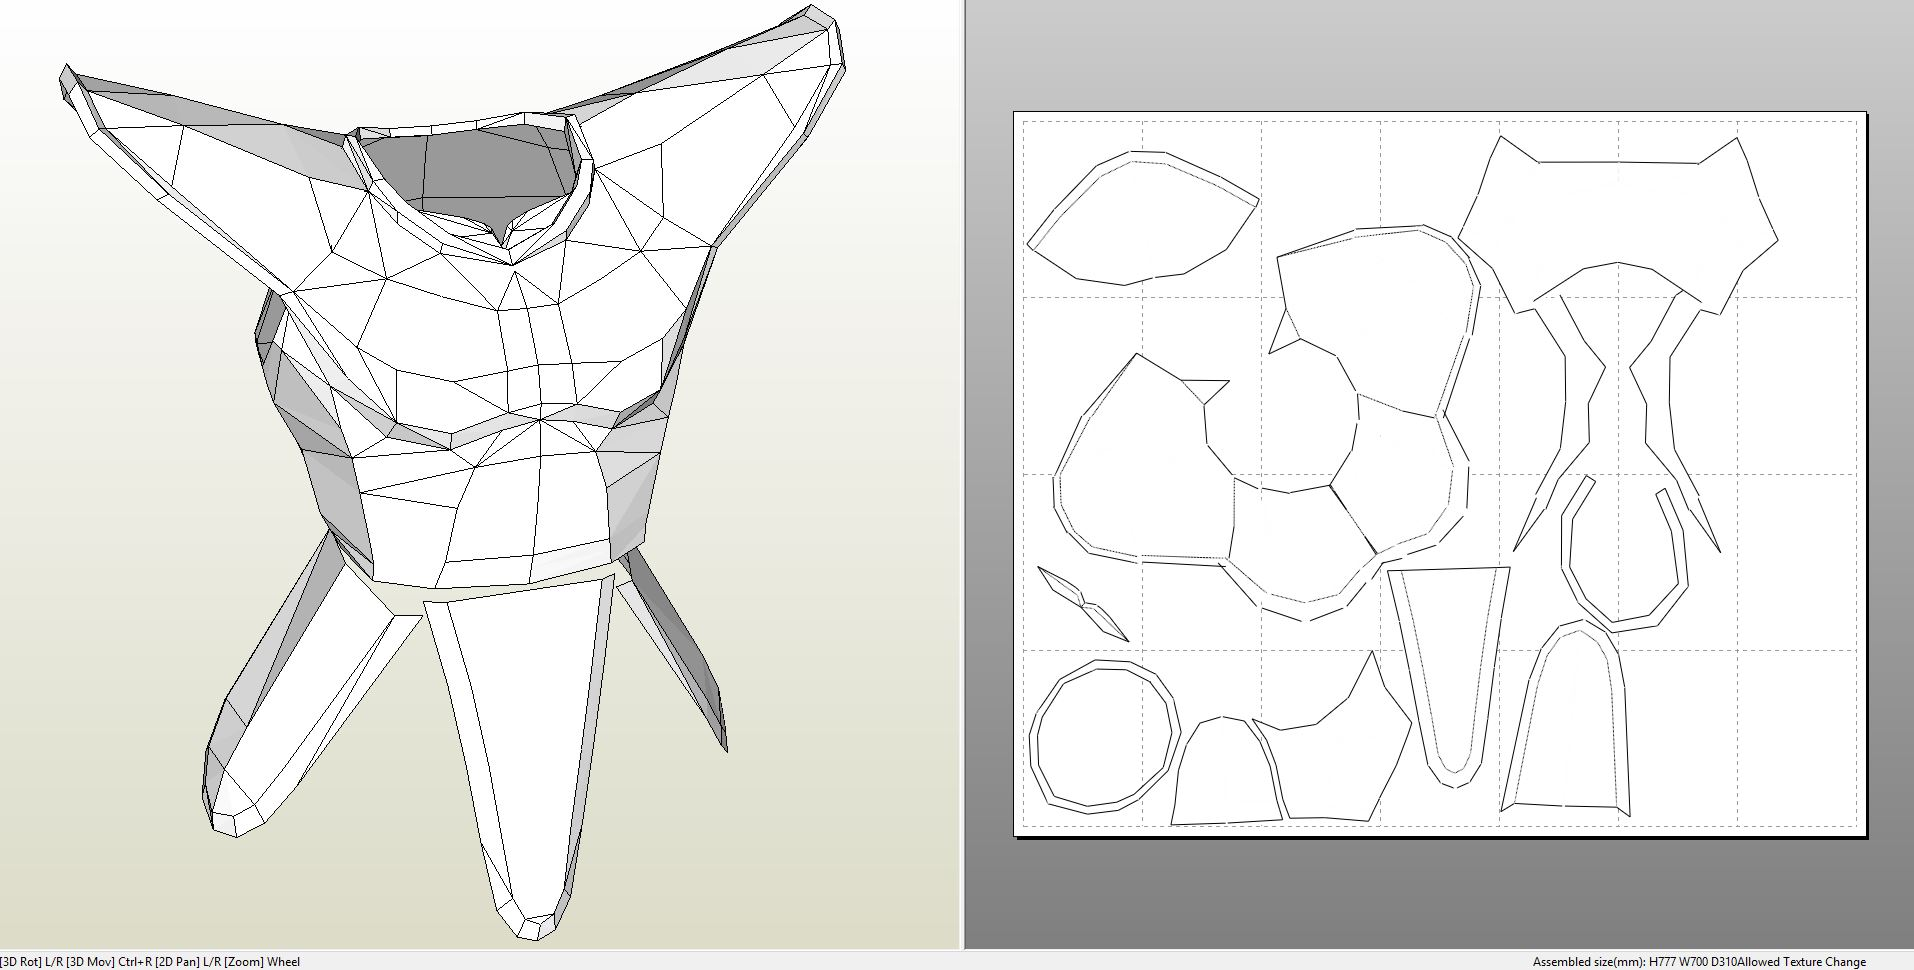 Foamcraft pdo file template for dragonball saiyan armor for Iron man foam armor templates